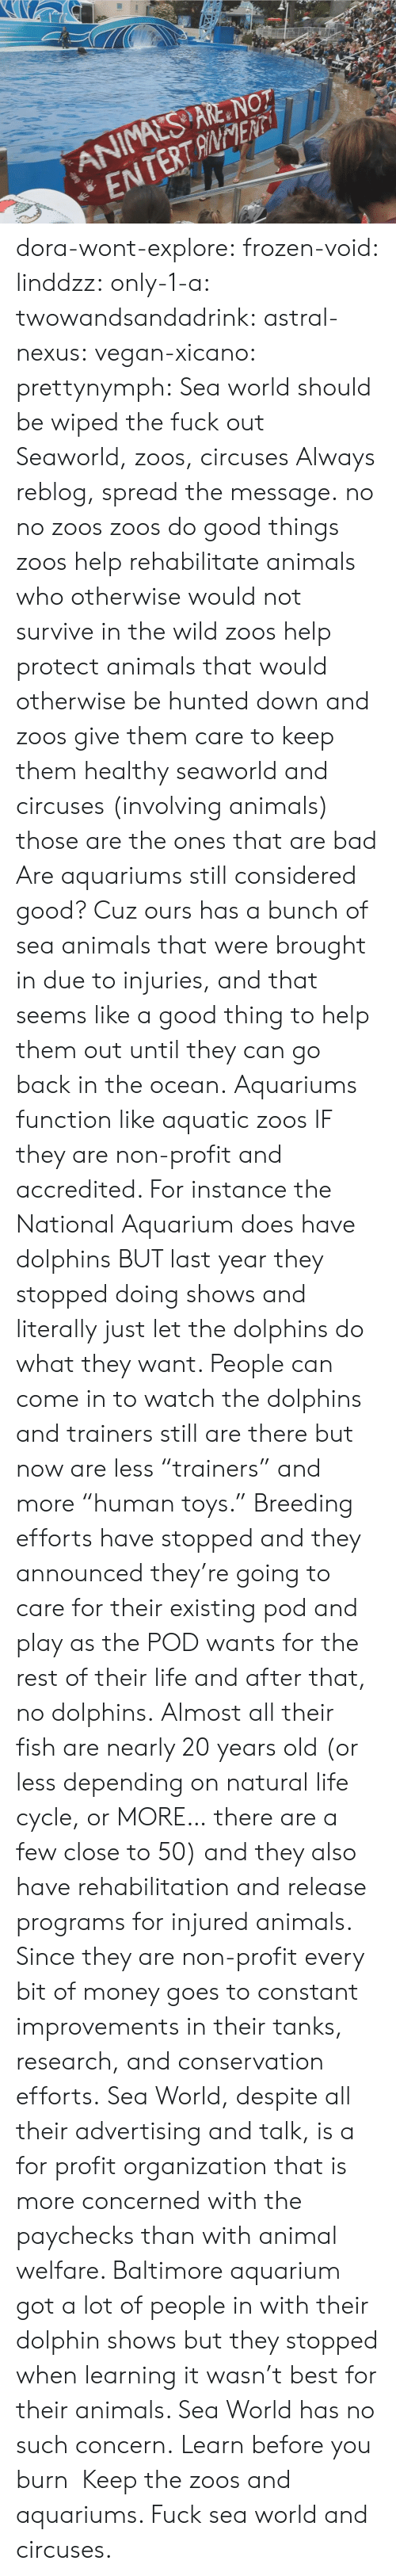 """Animals, Bad, and Frozen: ANIMALS ARE NOT  ENTERTANENTi dora-wont-explore:   frozen-void:  linddzz:  only-1-a:  twowandsandadrink:  astral-nexus:  vegan-xicano:  prettynymph:  Sea world should be wiped the fuck out  Seaworld, zoos, circuses  Always reblog, spread the message.  no no zoos zoos do good things zoos help rehabilitate animals who otherwise would not survive in the wild zoos help protect animals that would otherwise be hunted down and zoos give them care to keep them healthy seaworld and circuses (involving animals) those are the ones that are bad  Are aquariums still considered good? Cuz ours has a bunch of sea animals that were brought in due to injuries, and that seems like a good thing to help them out until they can go back in the ocean.  Aquariums function like aquatic zoos IF they are non-profit and accredited. For instance the National Aquarium does have dolphins BUT last year they stopped doing shows and literally just let the dolphins do what they want. People can come in to watch the dolphins and trainers still are there but now are less """"trainers"""" and more """"human toys."""" Breeding efforts have stopped and they announced they're going to care for their existing pod and play as the POD wants for the rest of their life and after that, no dolphins. Almost all their fish are nearly 20 years old (or less depending on natural life cycle, or MORE… there are a few close to 50) and they also have rehabilitation and release programs for injured animals. Since they are non-profit every bit of money goes to constant improvements in their tanks, research, and conservation efforts. Sea World, despite all their advertising and talk, is a for profit organization that is more concerned with the paychecks than with animal welfare. Baltimore aquarium got a lot of people in with their dolphin shows but they stopped when learning it wasn't best for their animals. Sea World has no such concern.  Learn before you burn  Keep the zoos and aquariums. Fuck sea world and ci"""